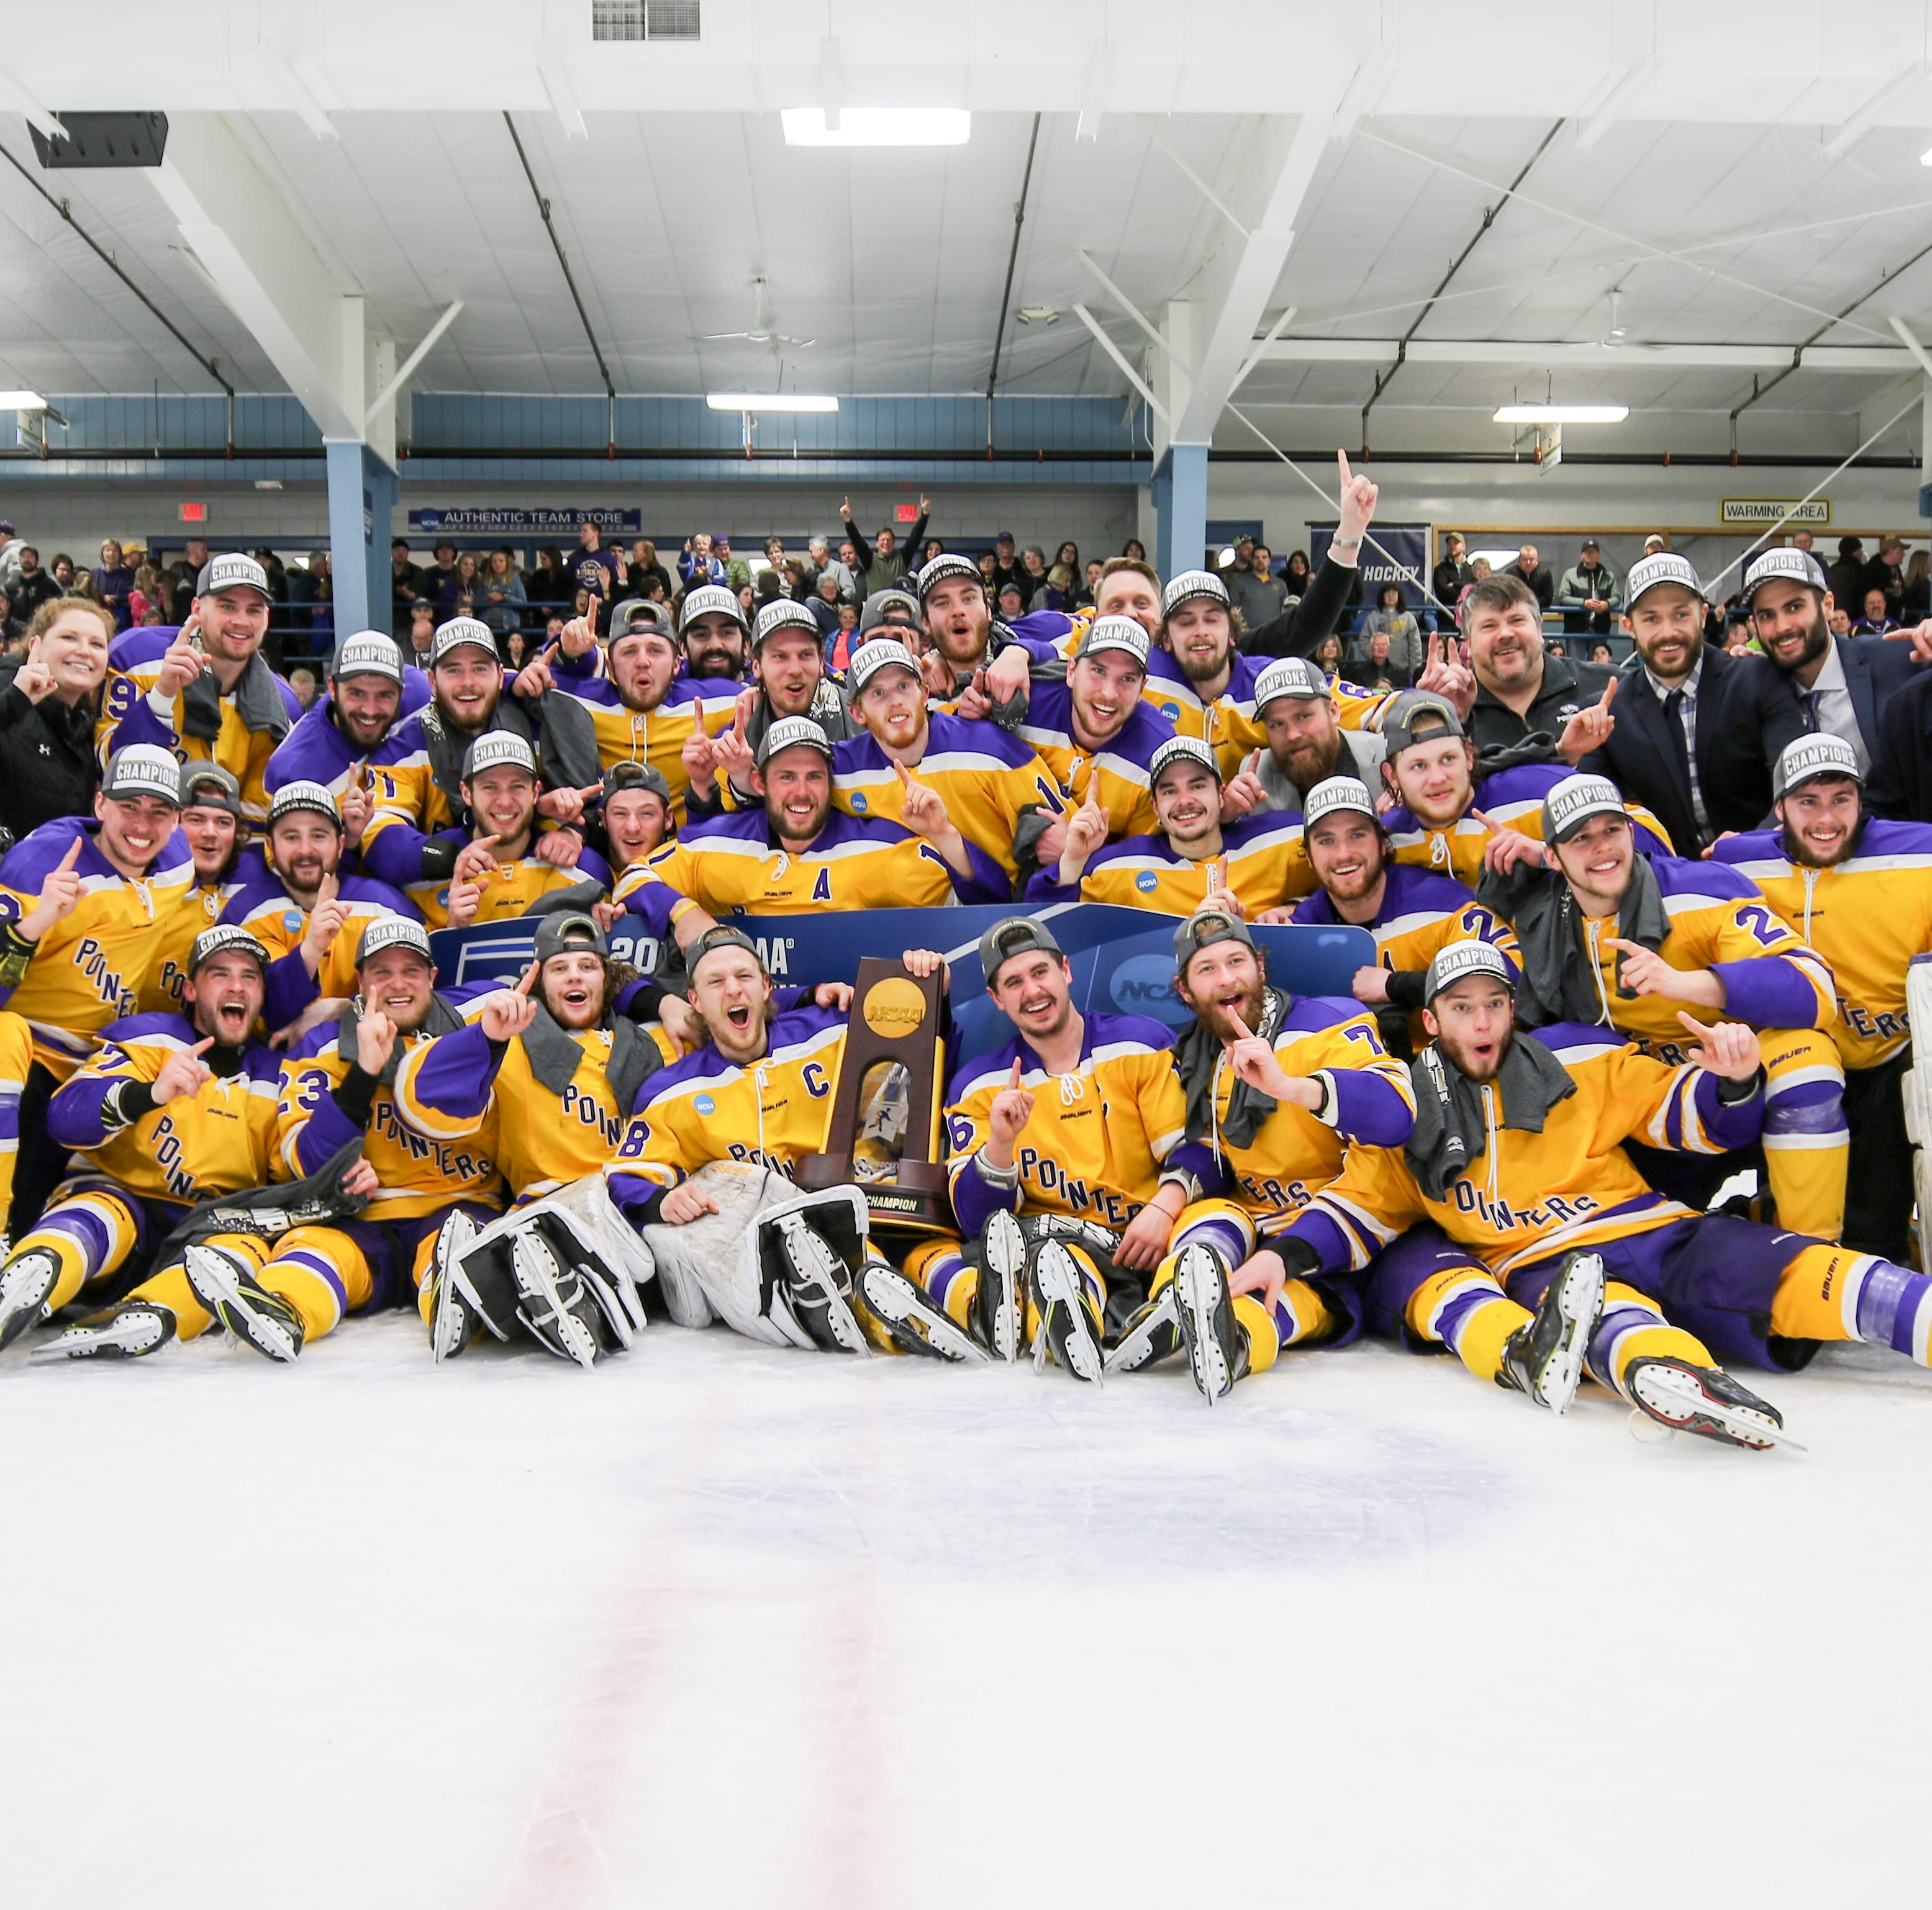 NCAA hockey championships: UWSP wins national title with overtime victory over Norwich